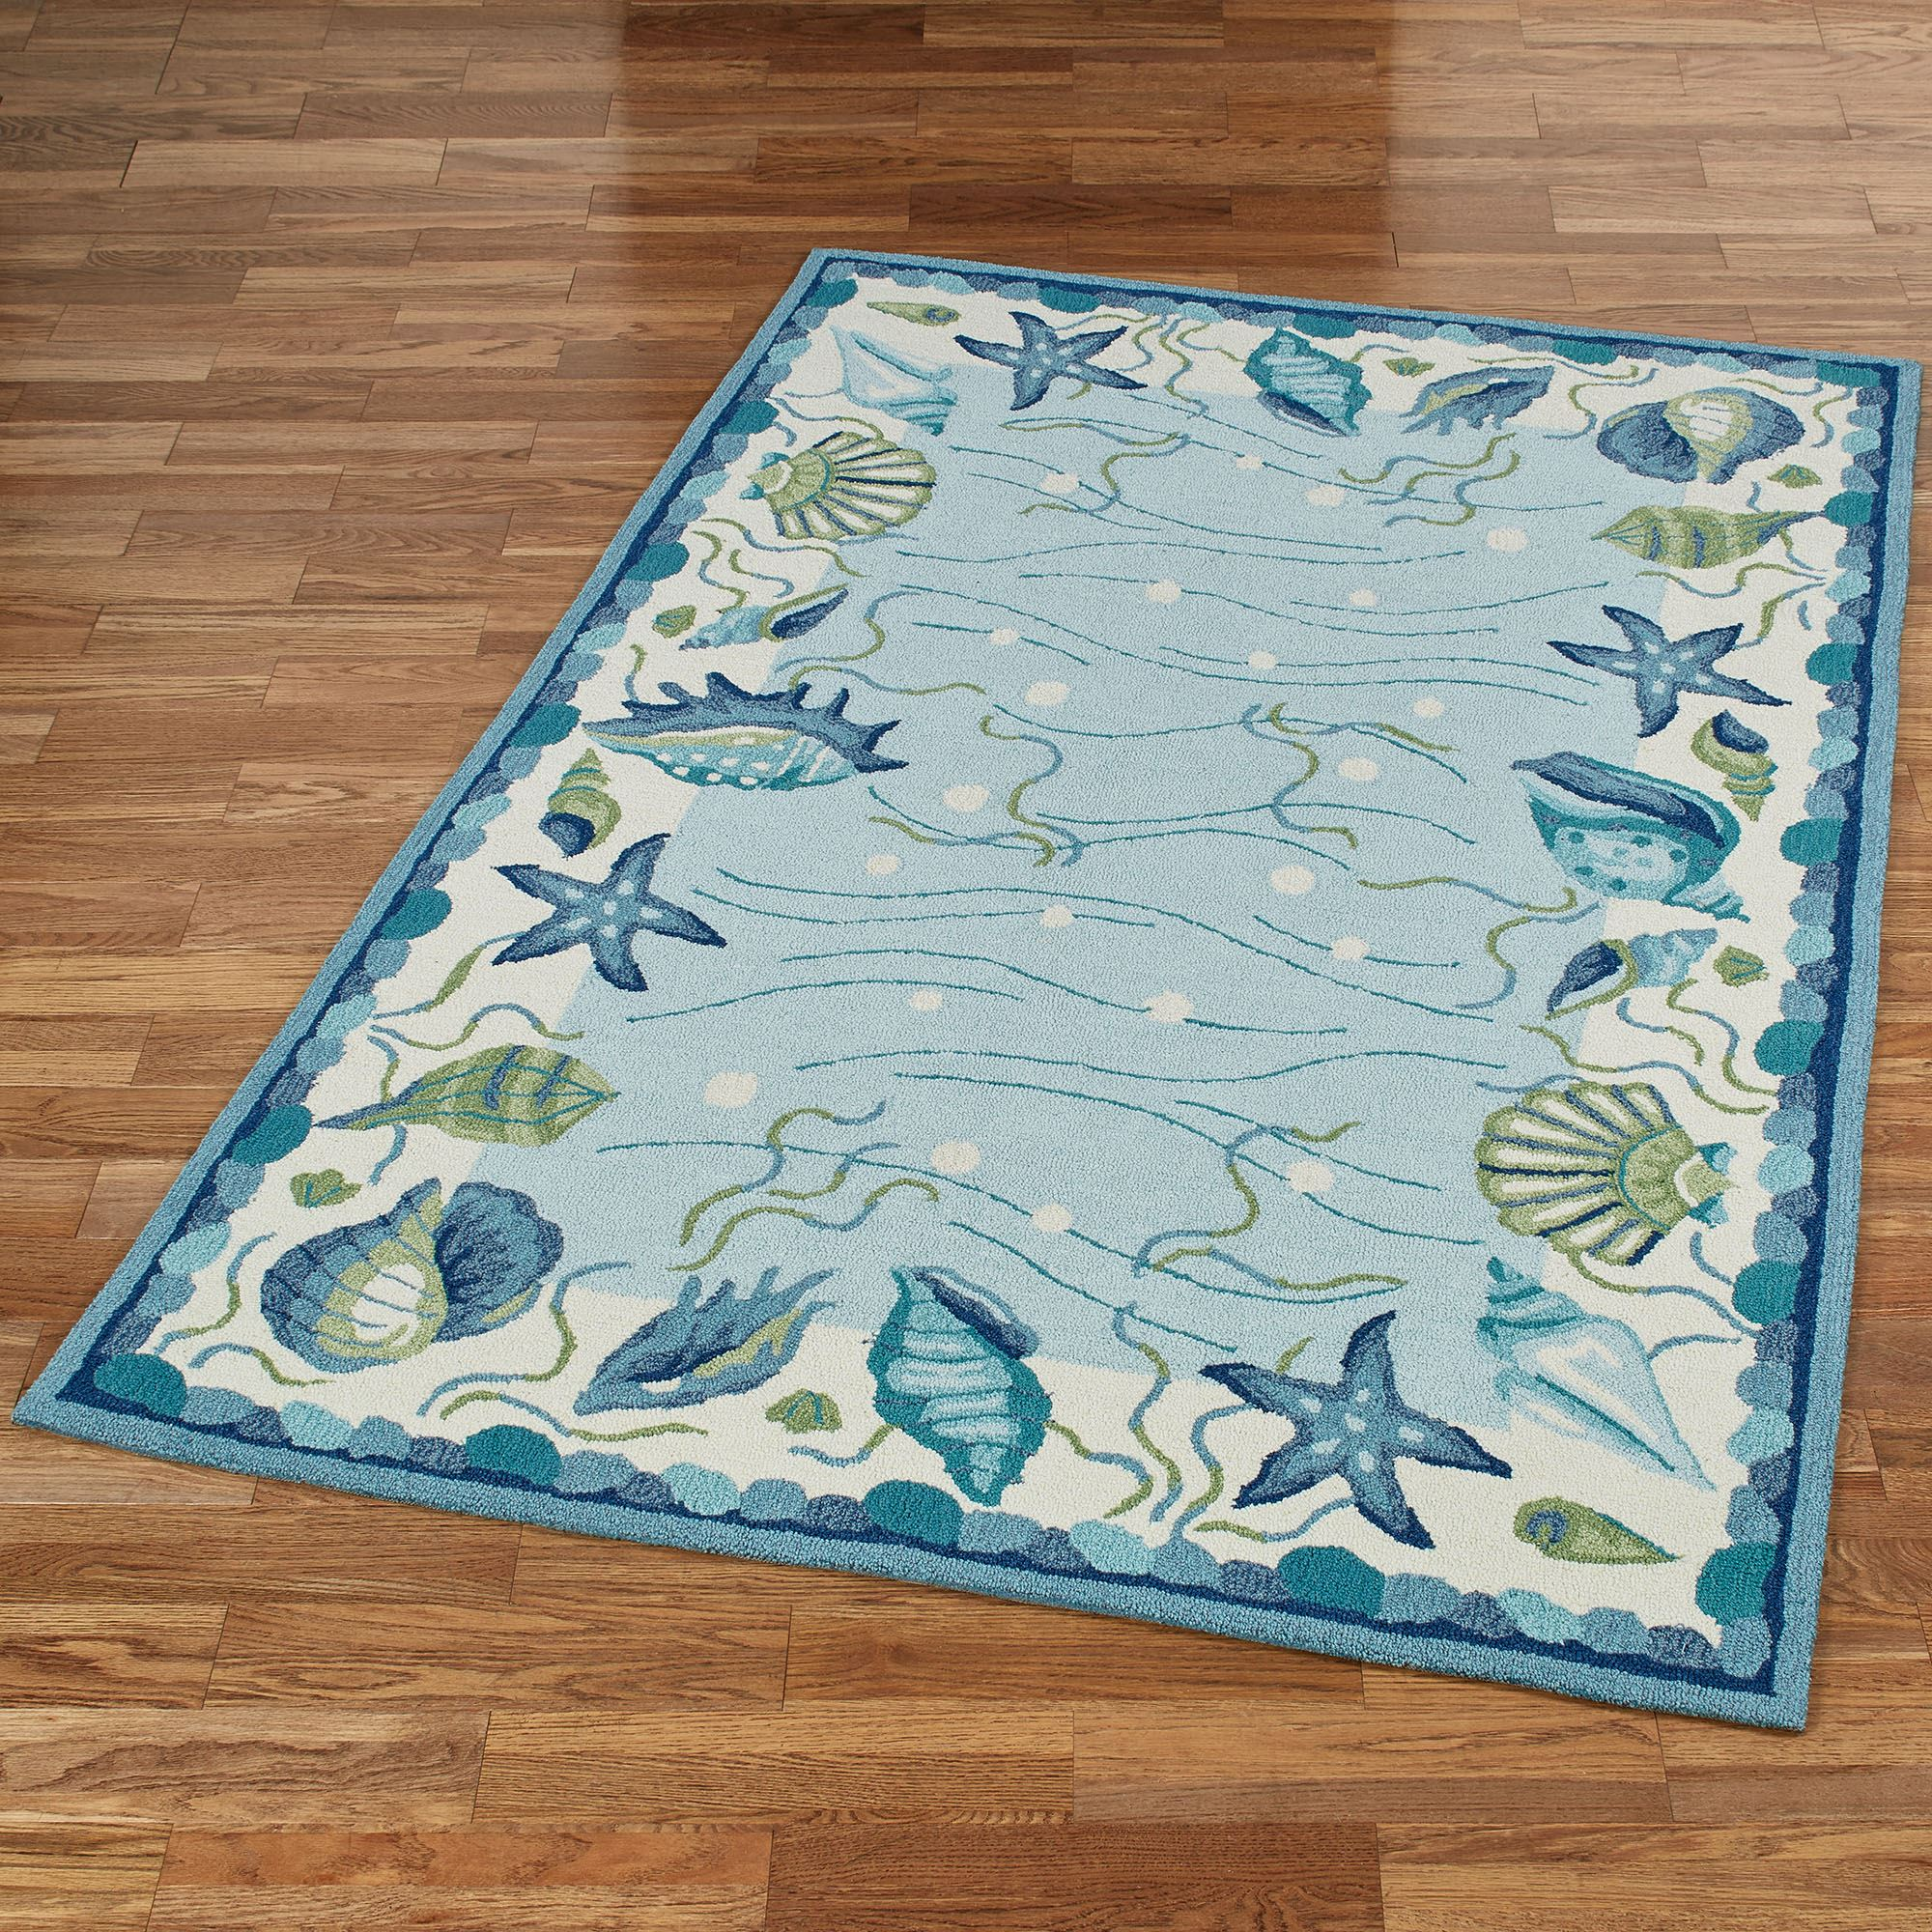 in ethan pin turquoise luster this damask of made rug hand combines from area weave allen art jacquard by india the with variegated silk